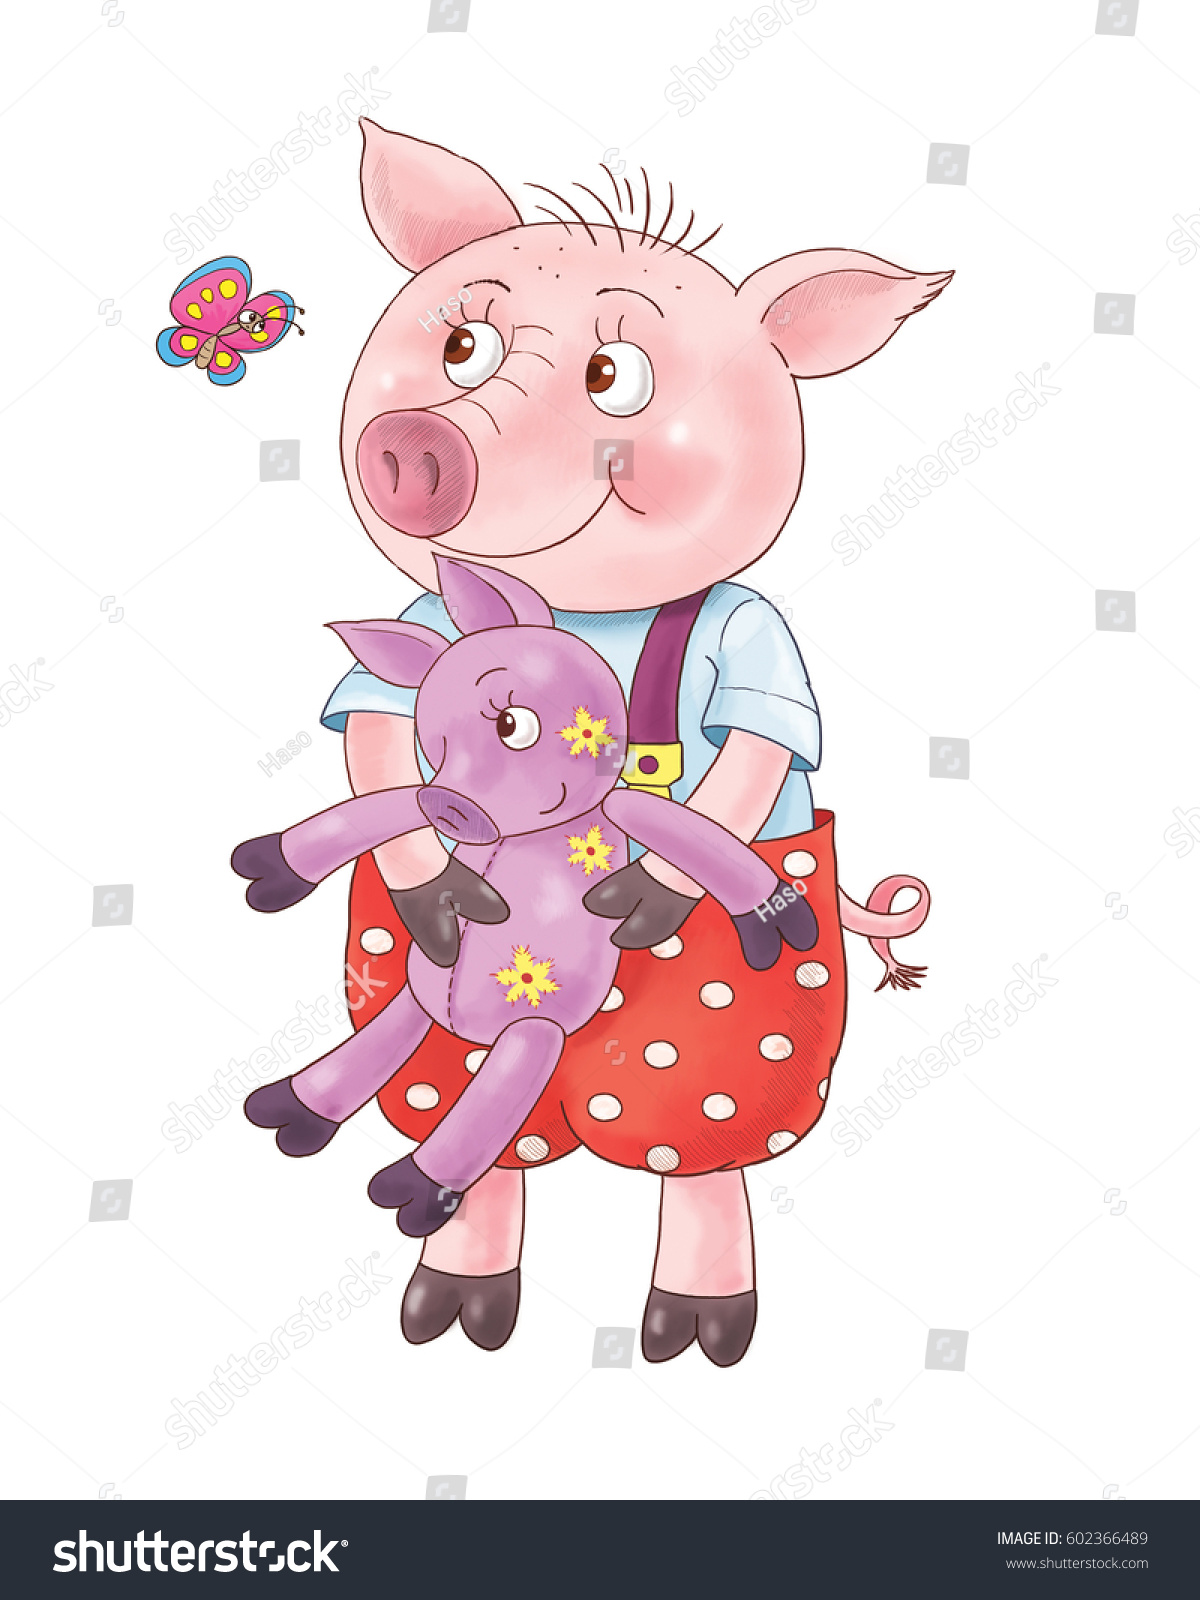 Three Little Pigs Fairy Tale Cute Stock Illustration 602366489 ...